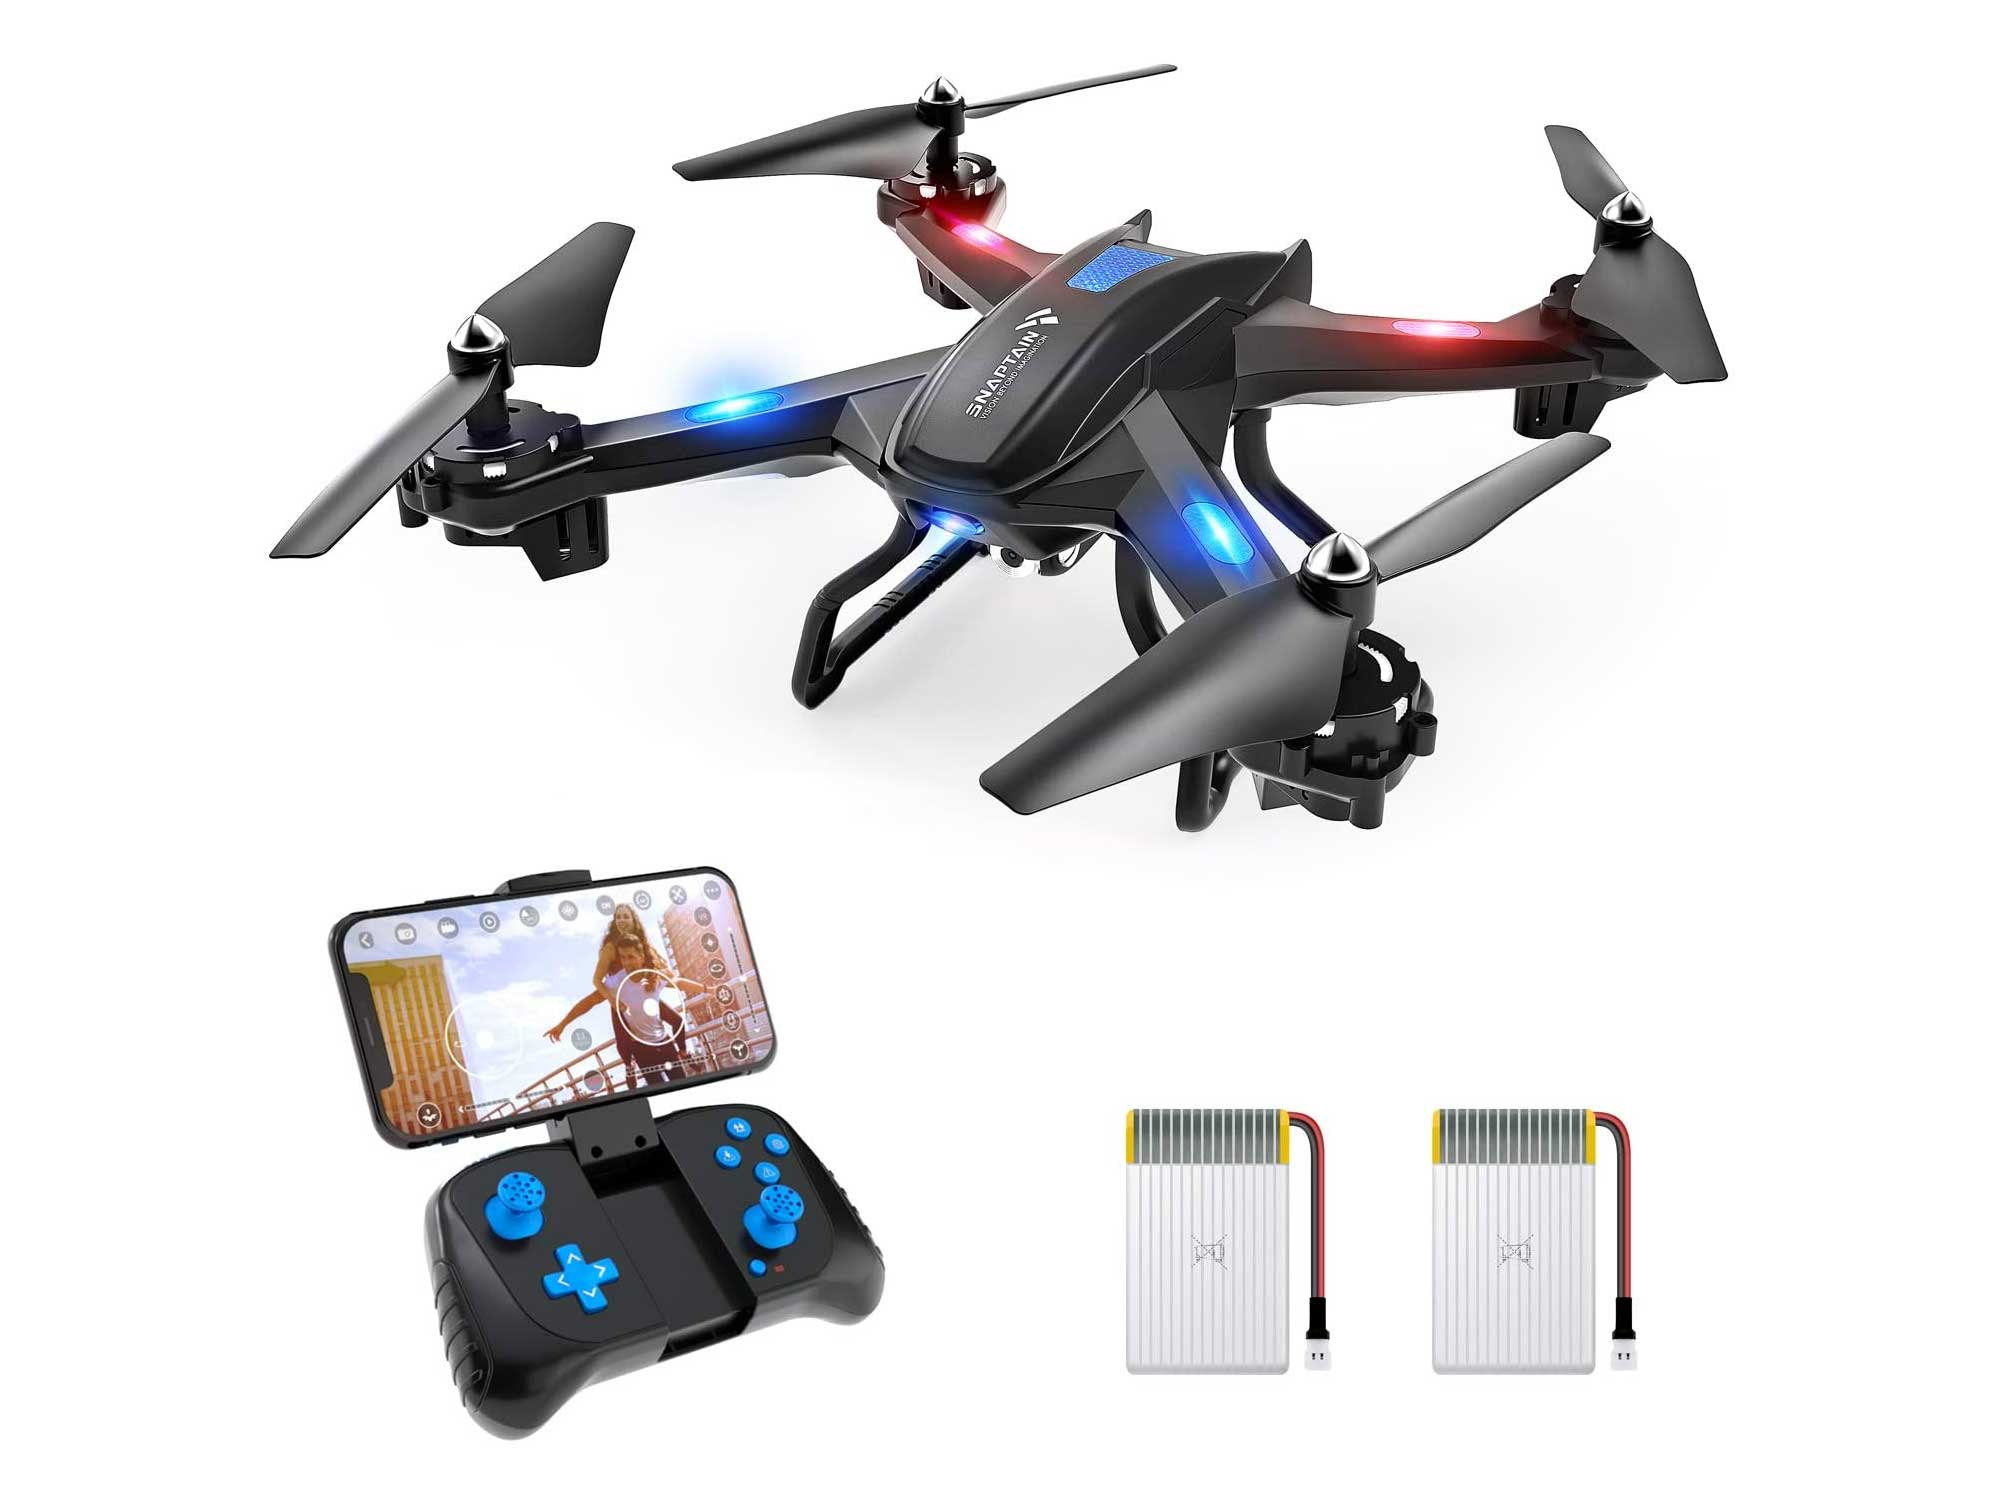 SNAPTAIN S5C WiFi FPV Drone with 720P HD Camera,Voice Control, Wide-Angle Live Video RC Quadcopter with Altitude Hold